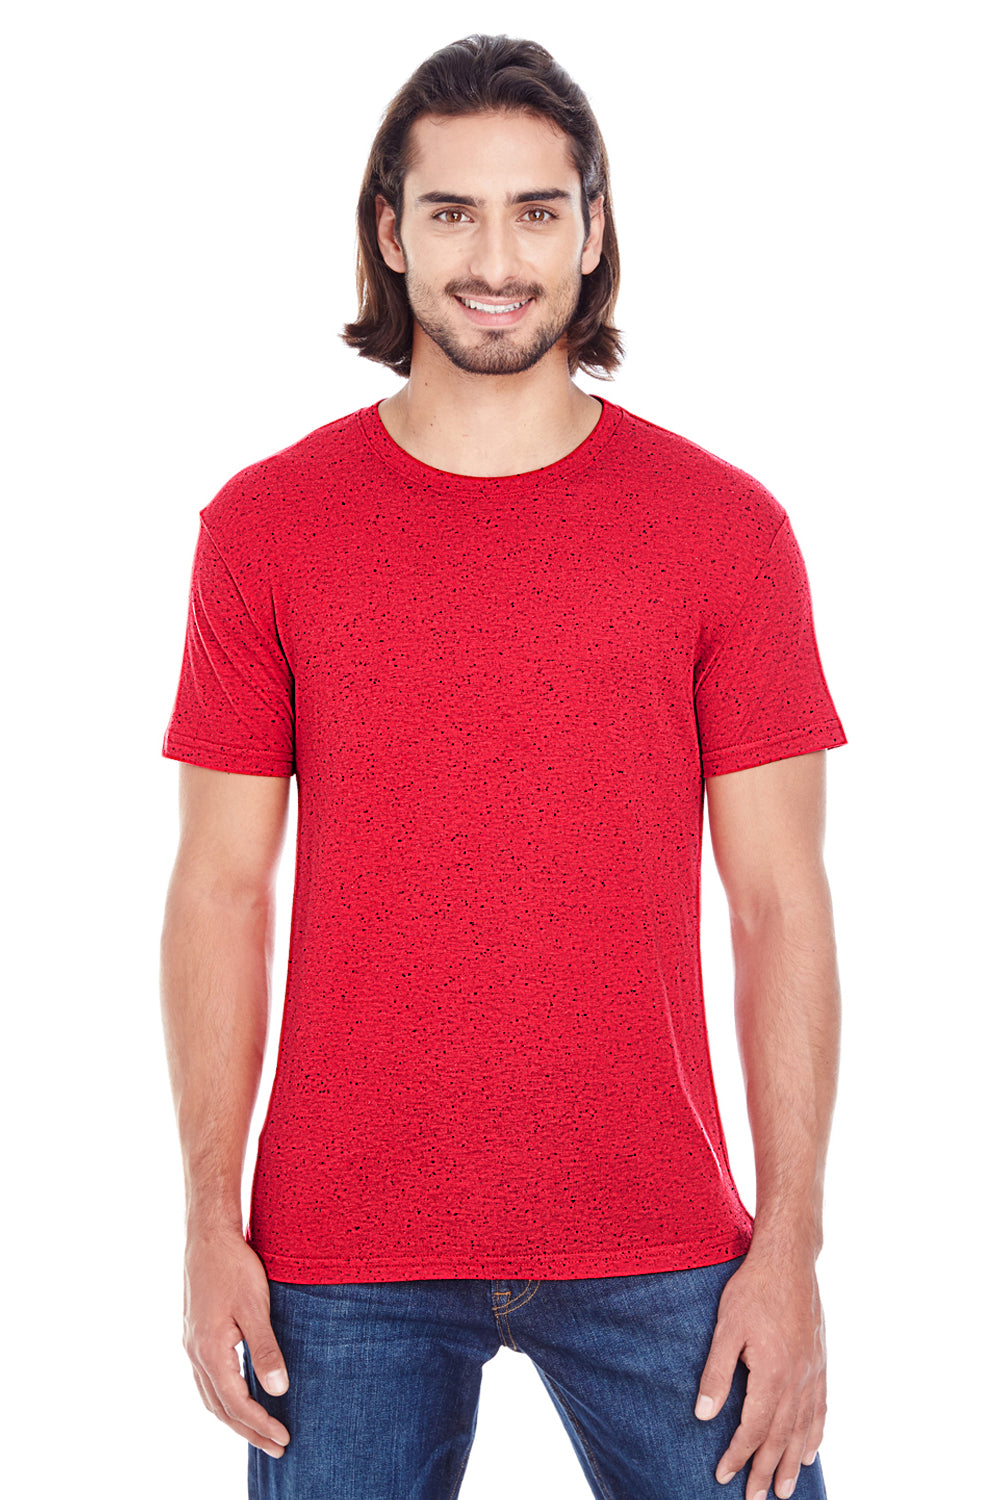 Threadfast Apparel 103A Mens Fleck Short Sleeve Crewneck T-Shirt Red Front